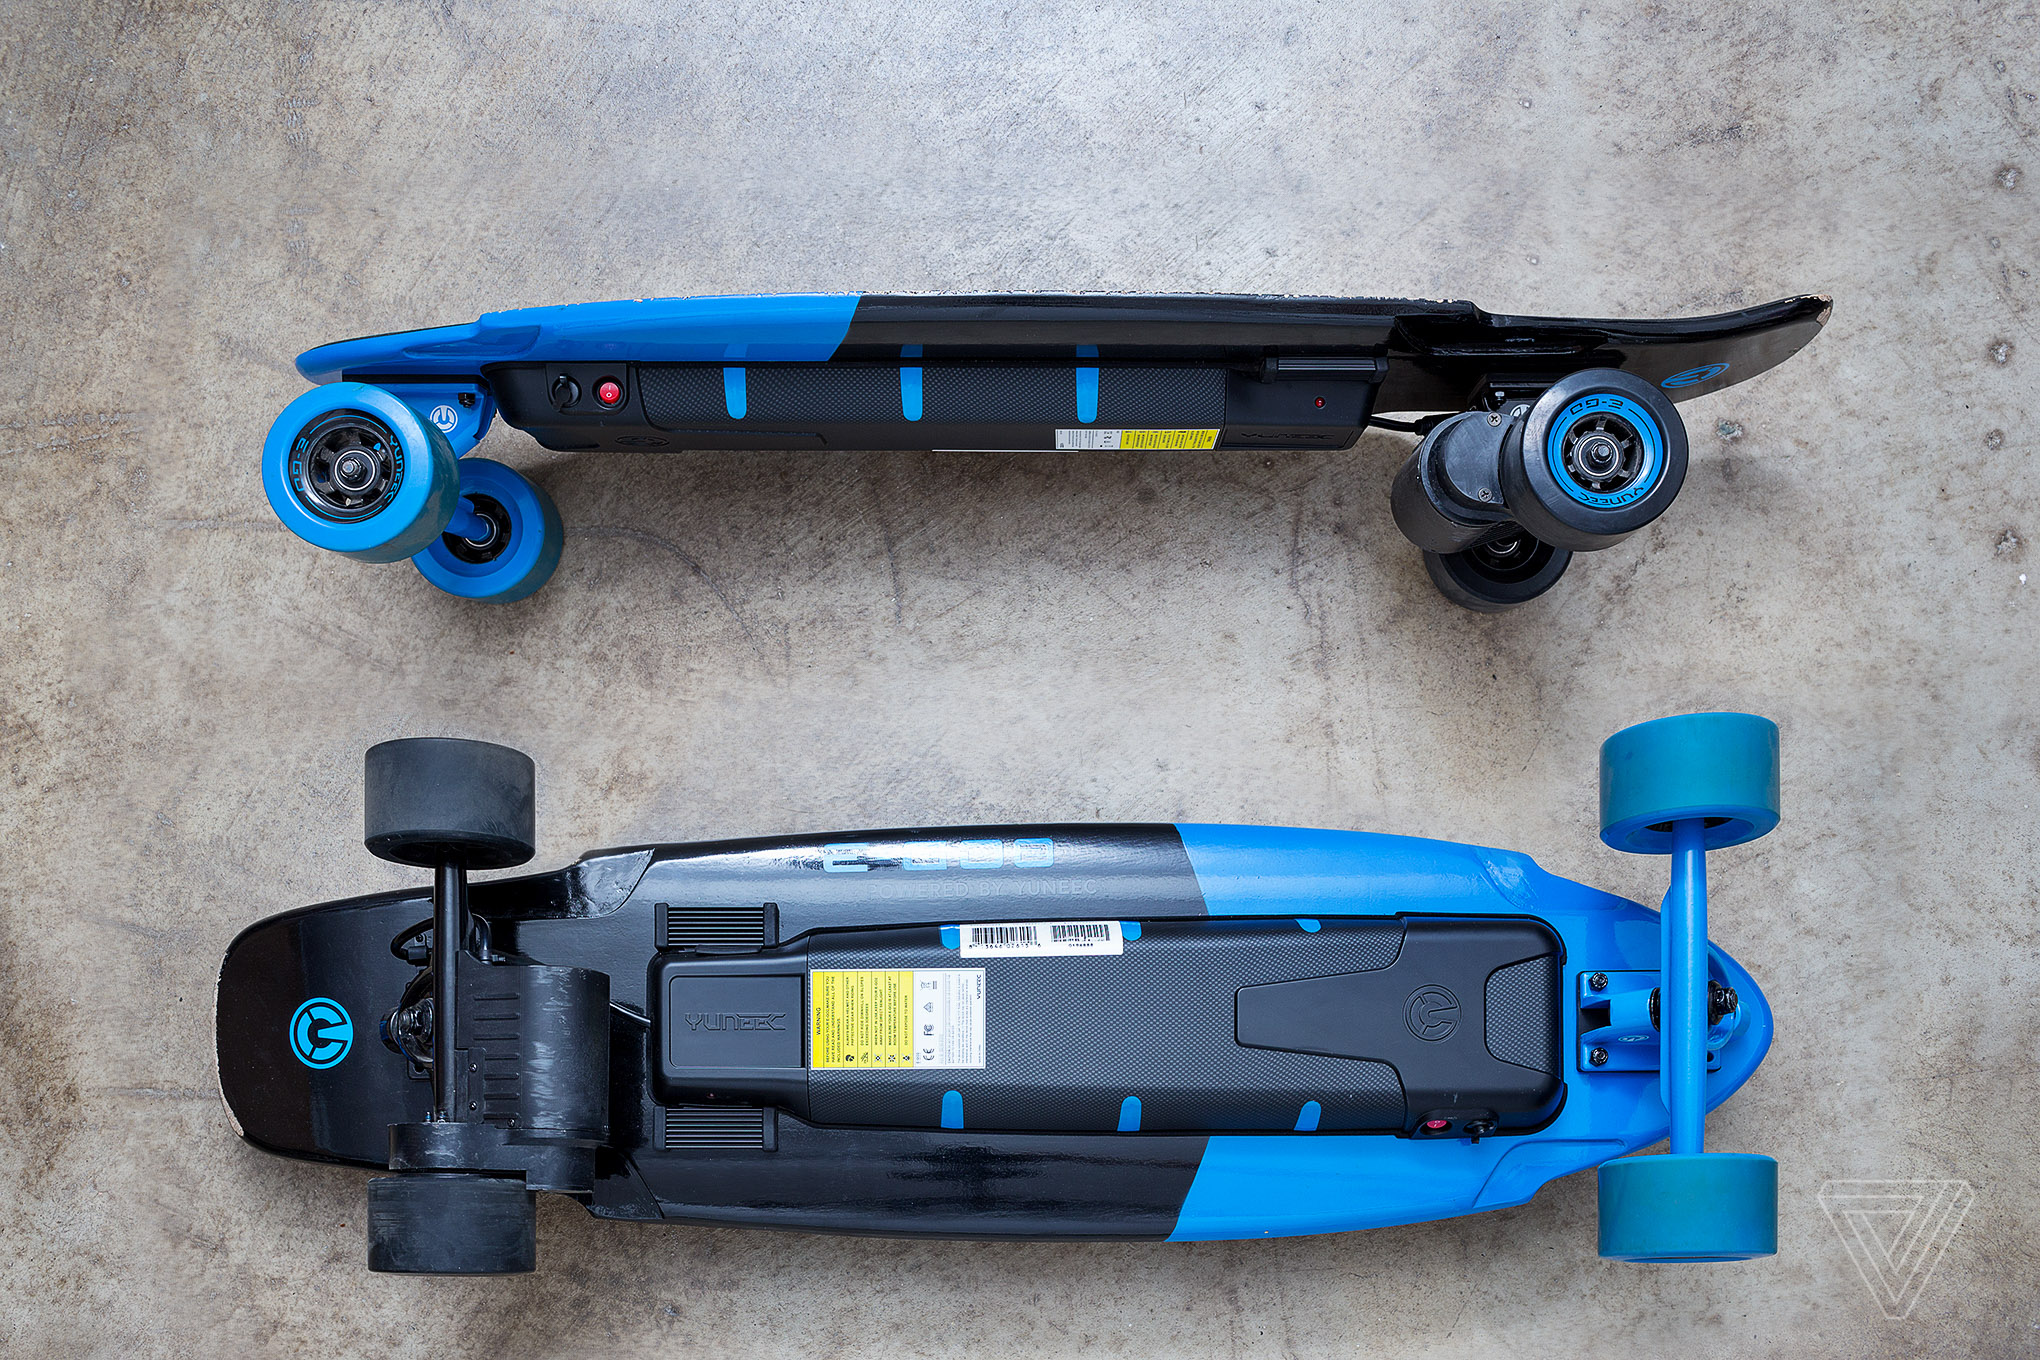 Yuneec E-Go2 review: an extremely reasonable electric skateboard ...